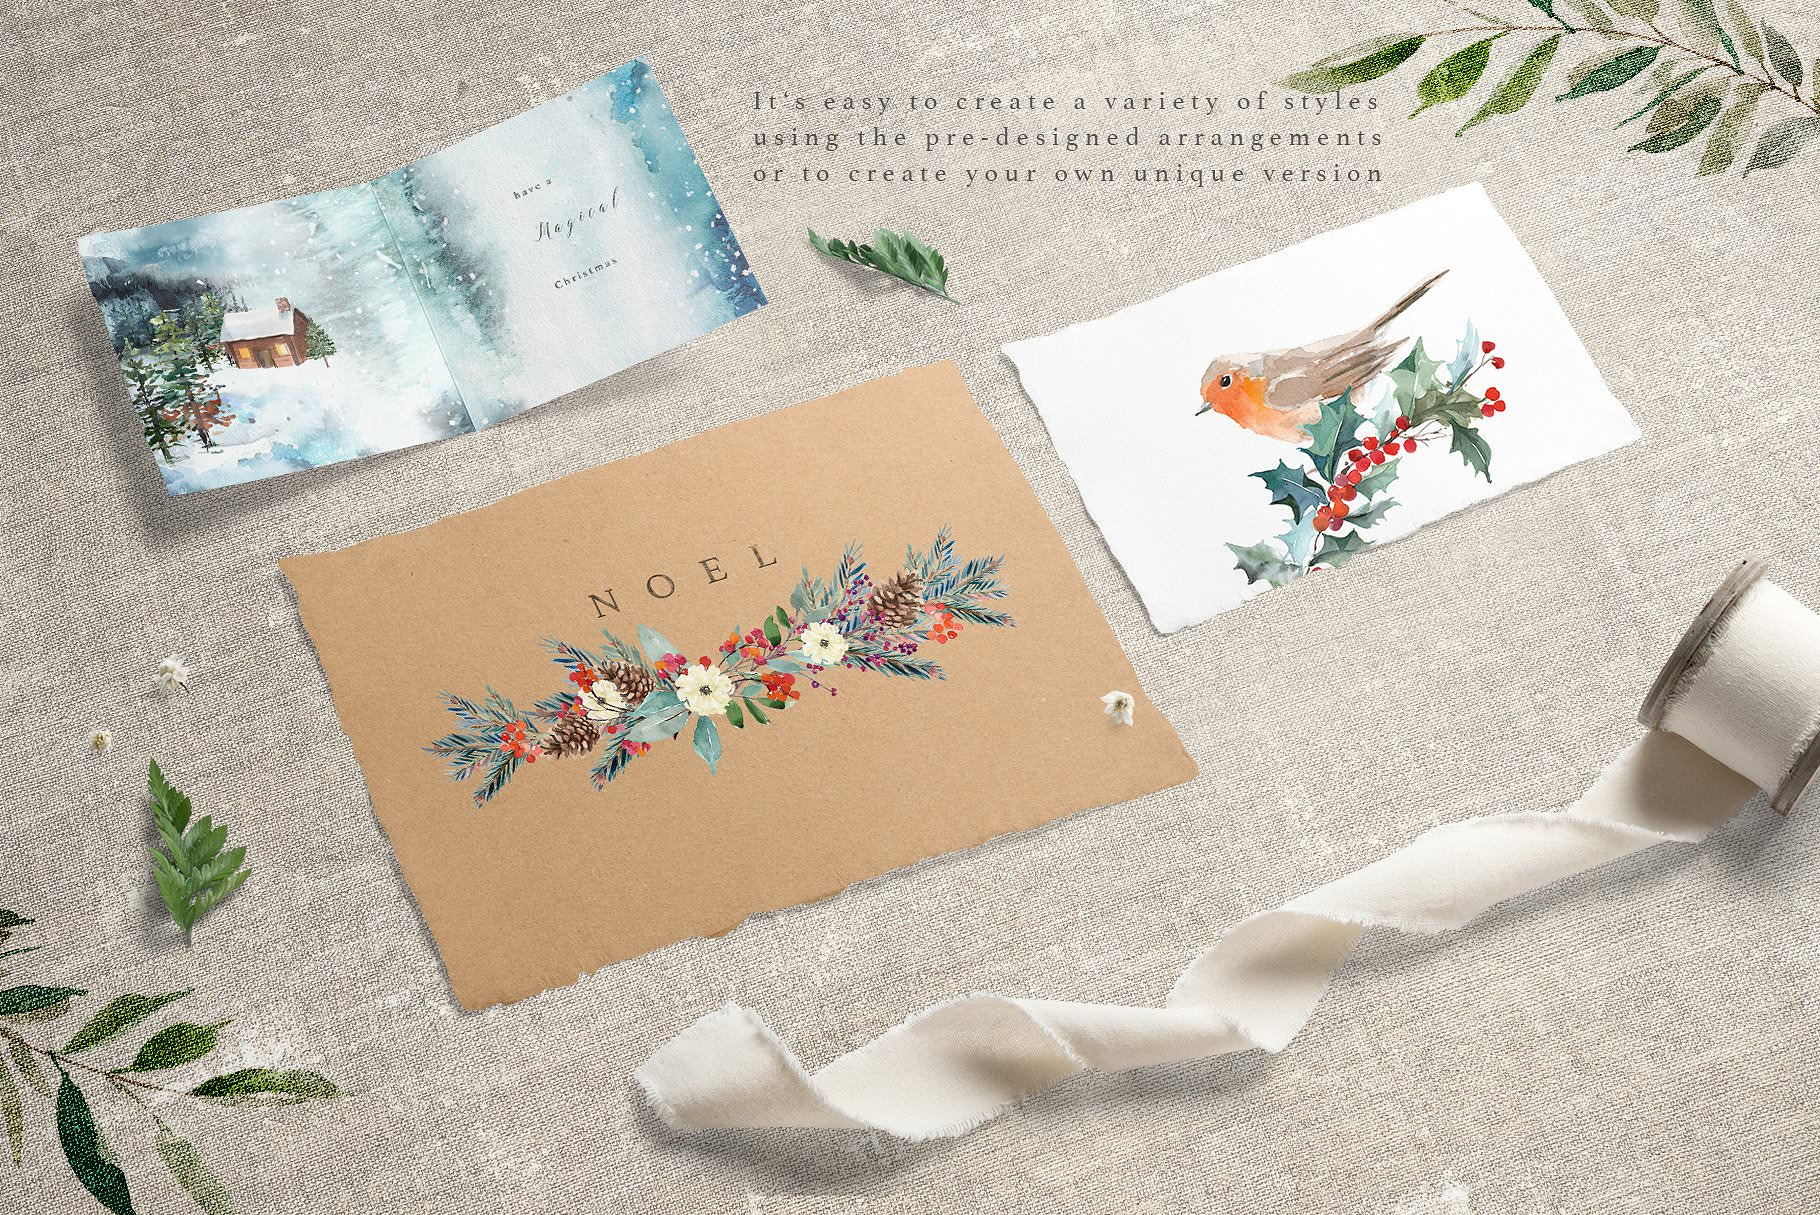 Custom printed watercolor greeting cards.